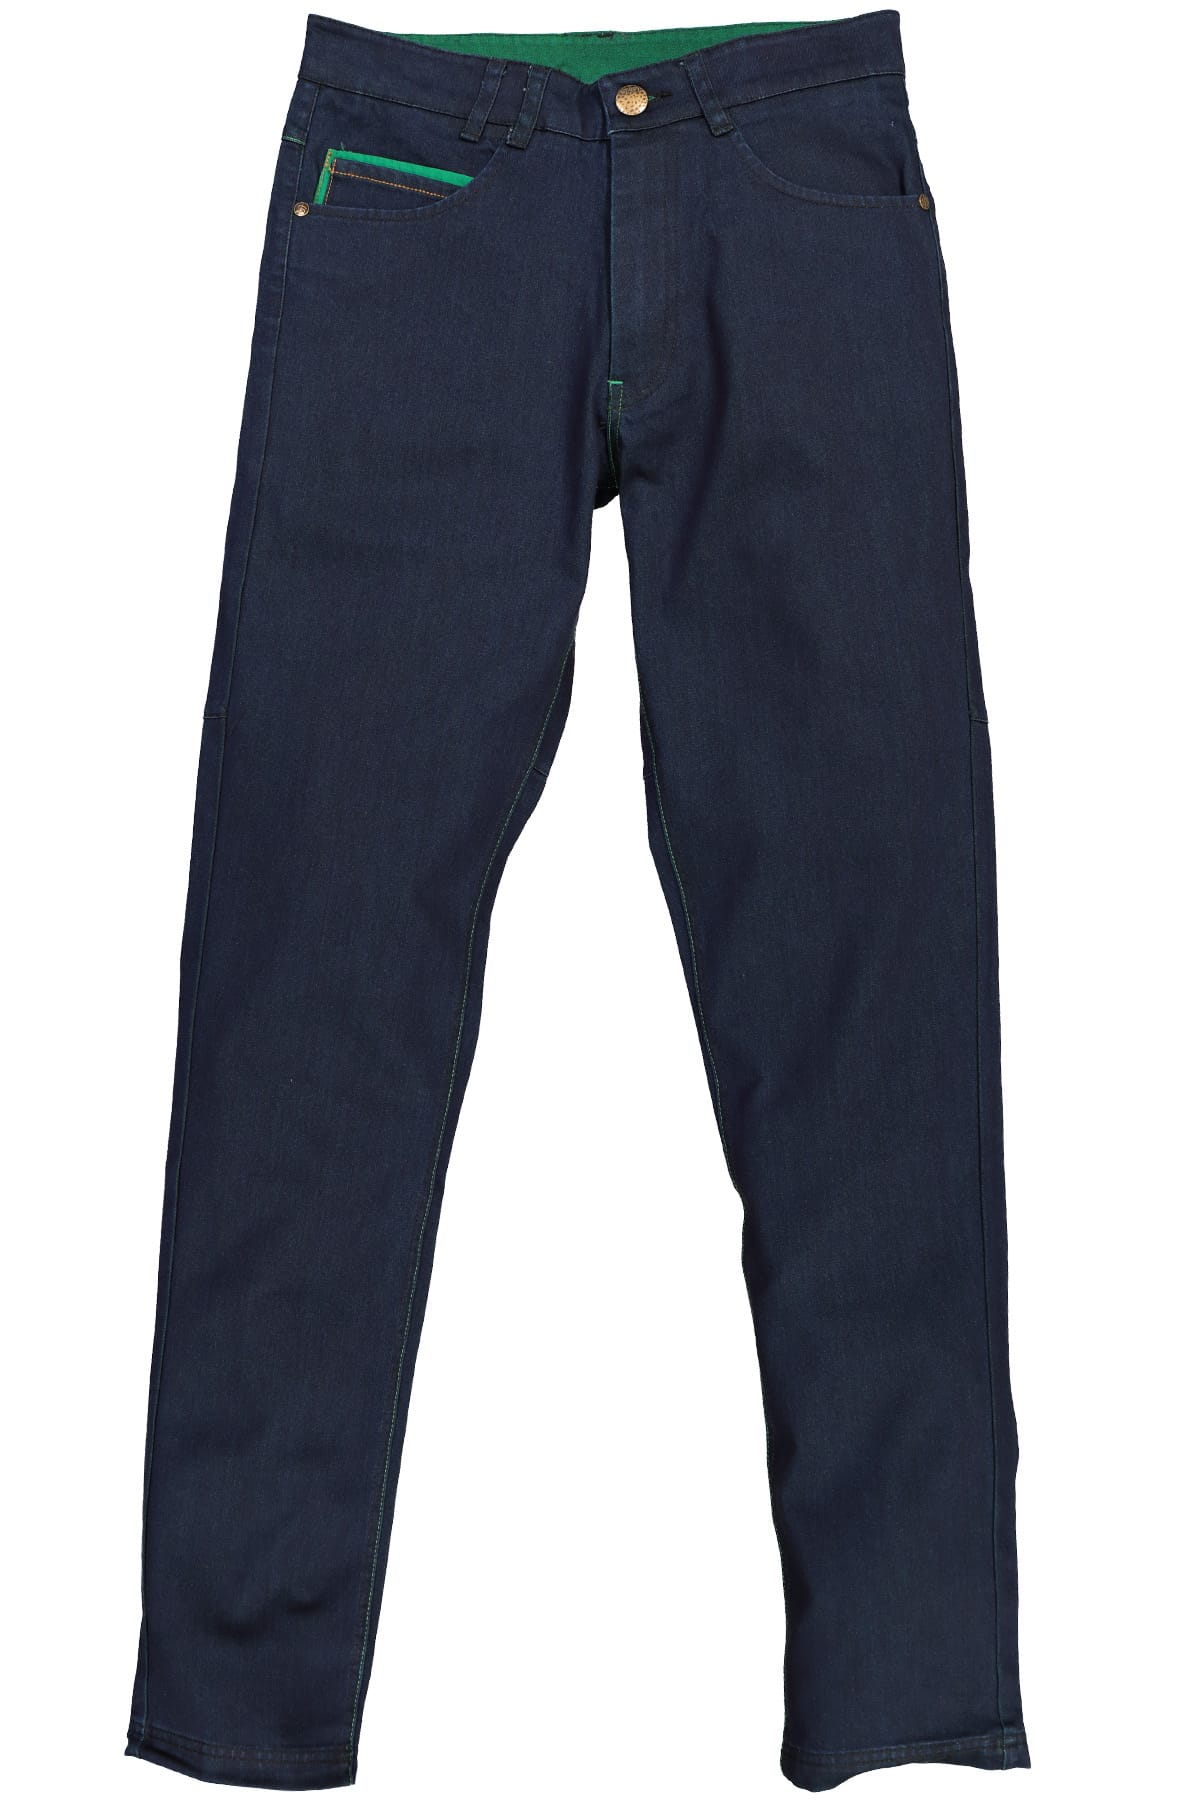 Smash Navy Blue & Green Stitch Denim Pant